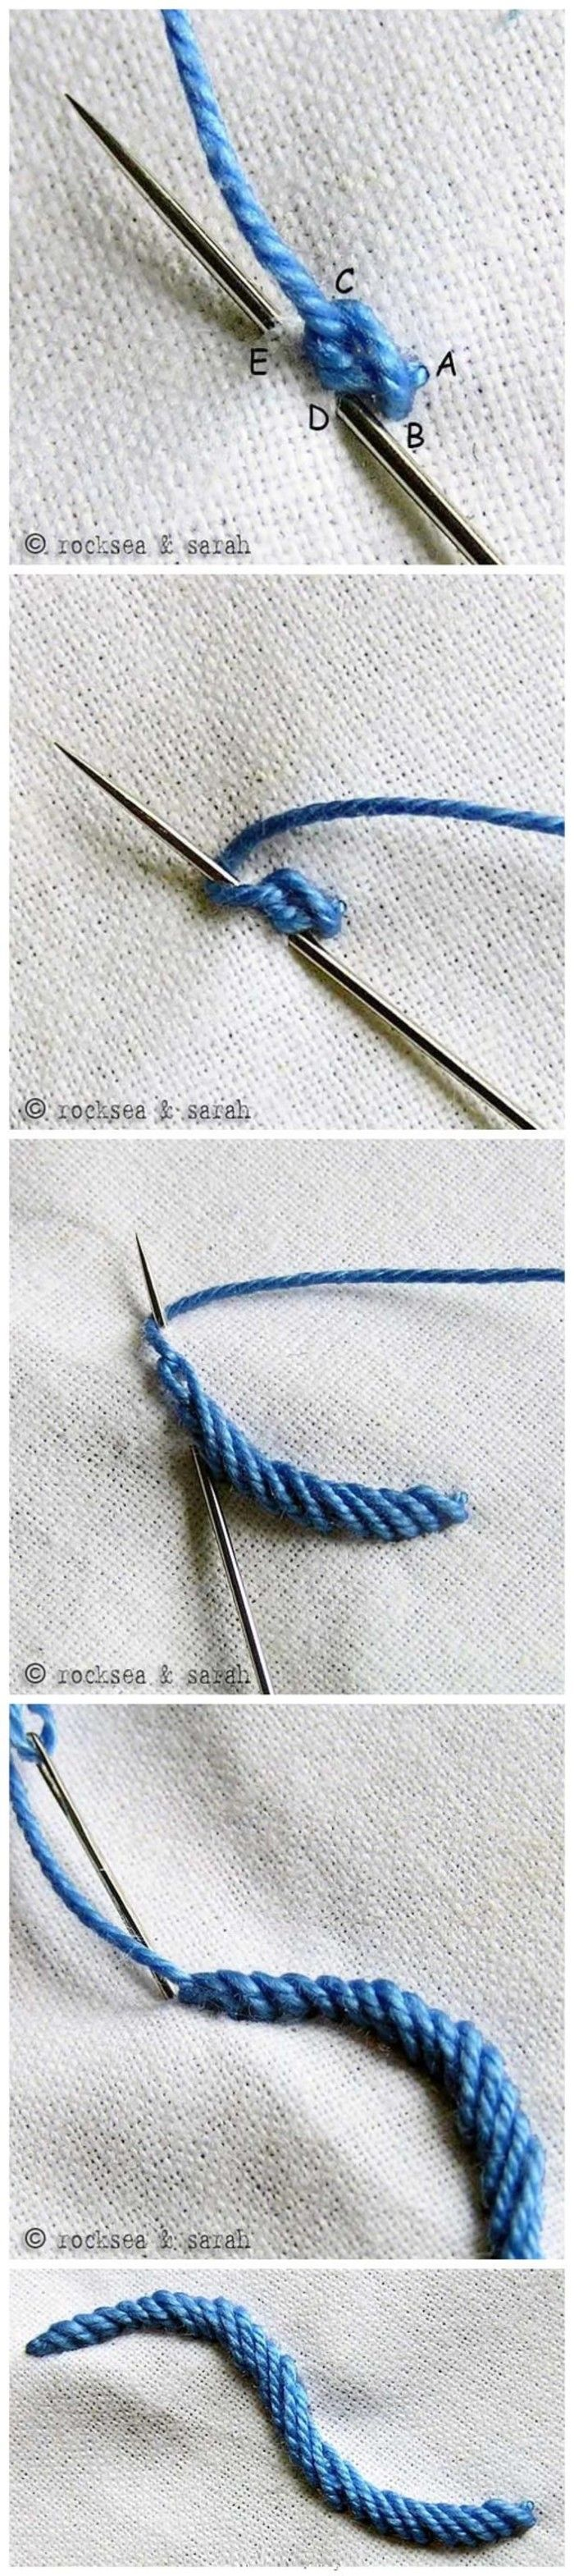 {} Various embroidery needle. [A] group meatball